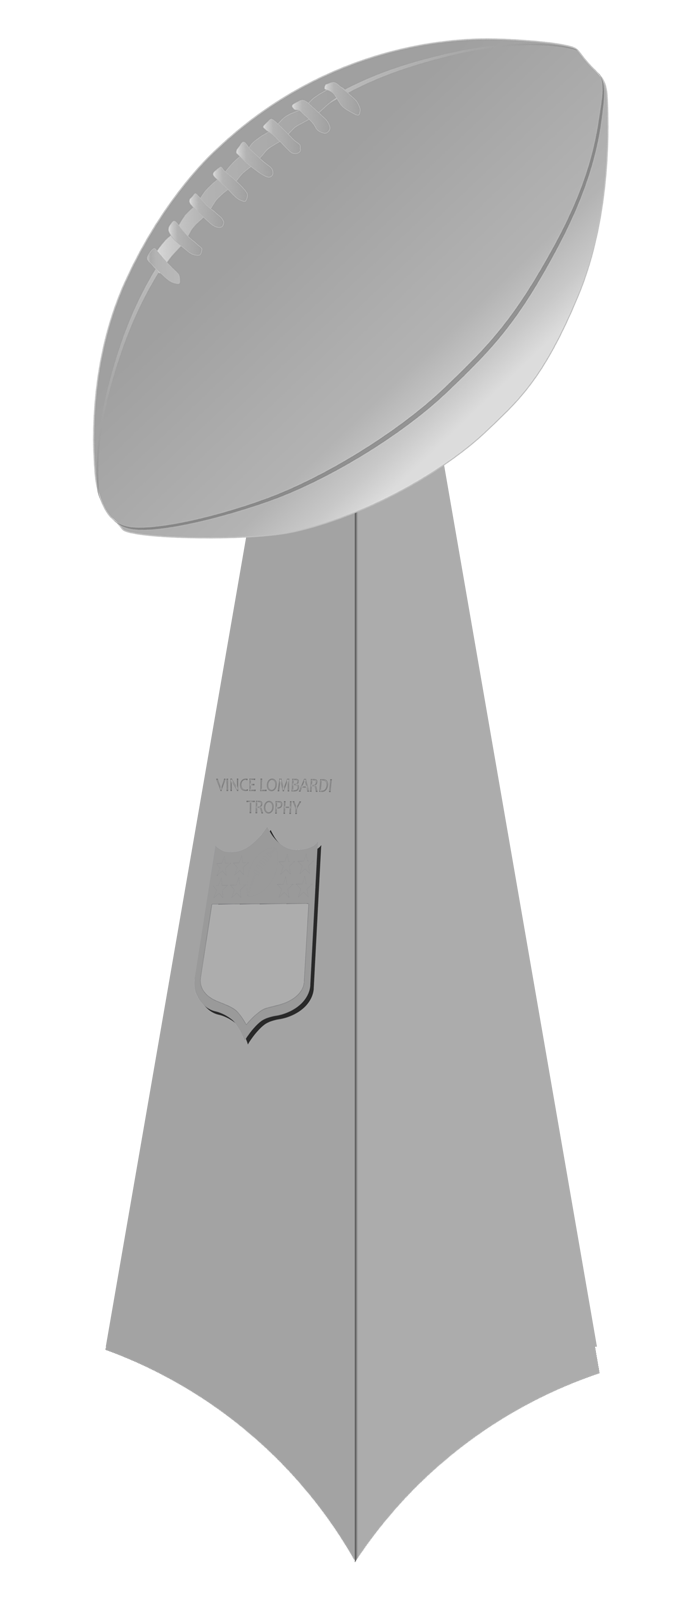 Nfl trophy png. File lombardi wikimedia commons